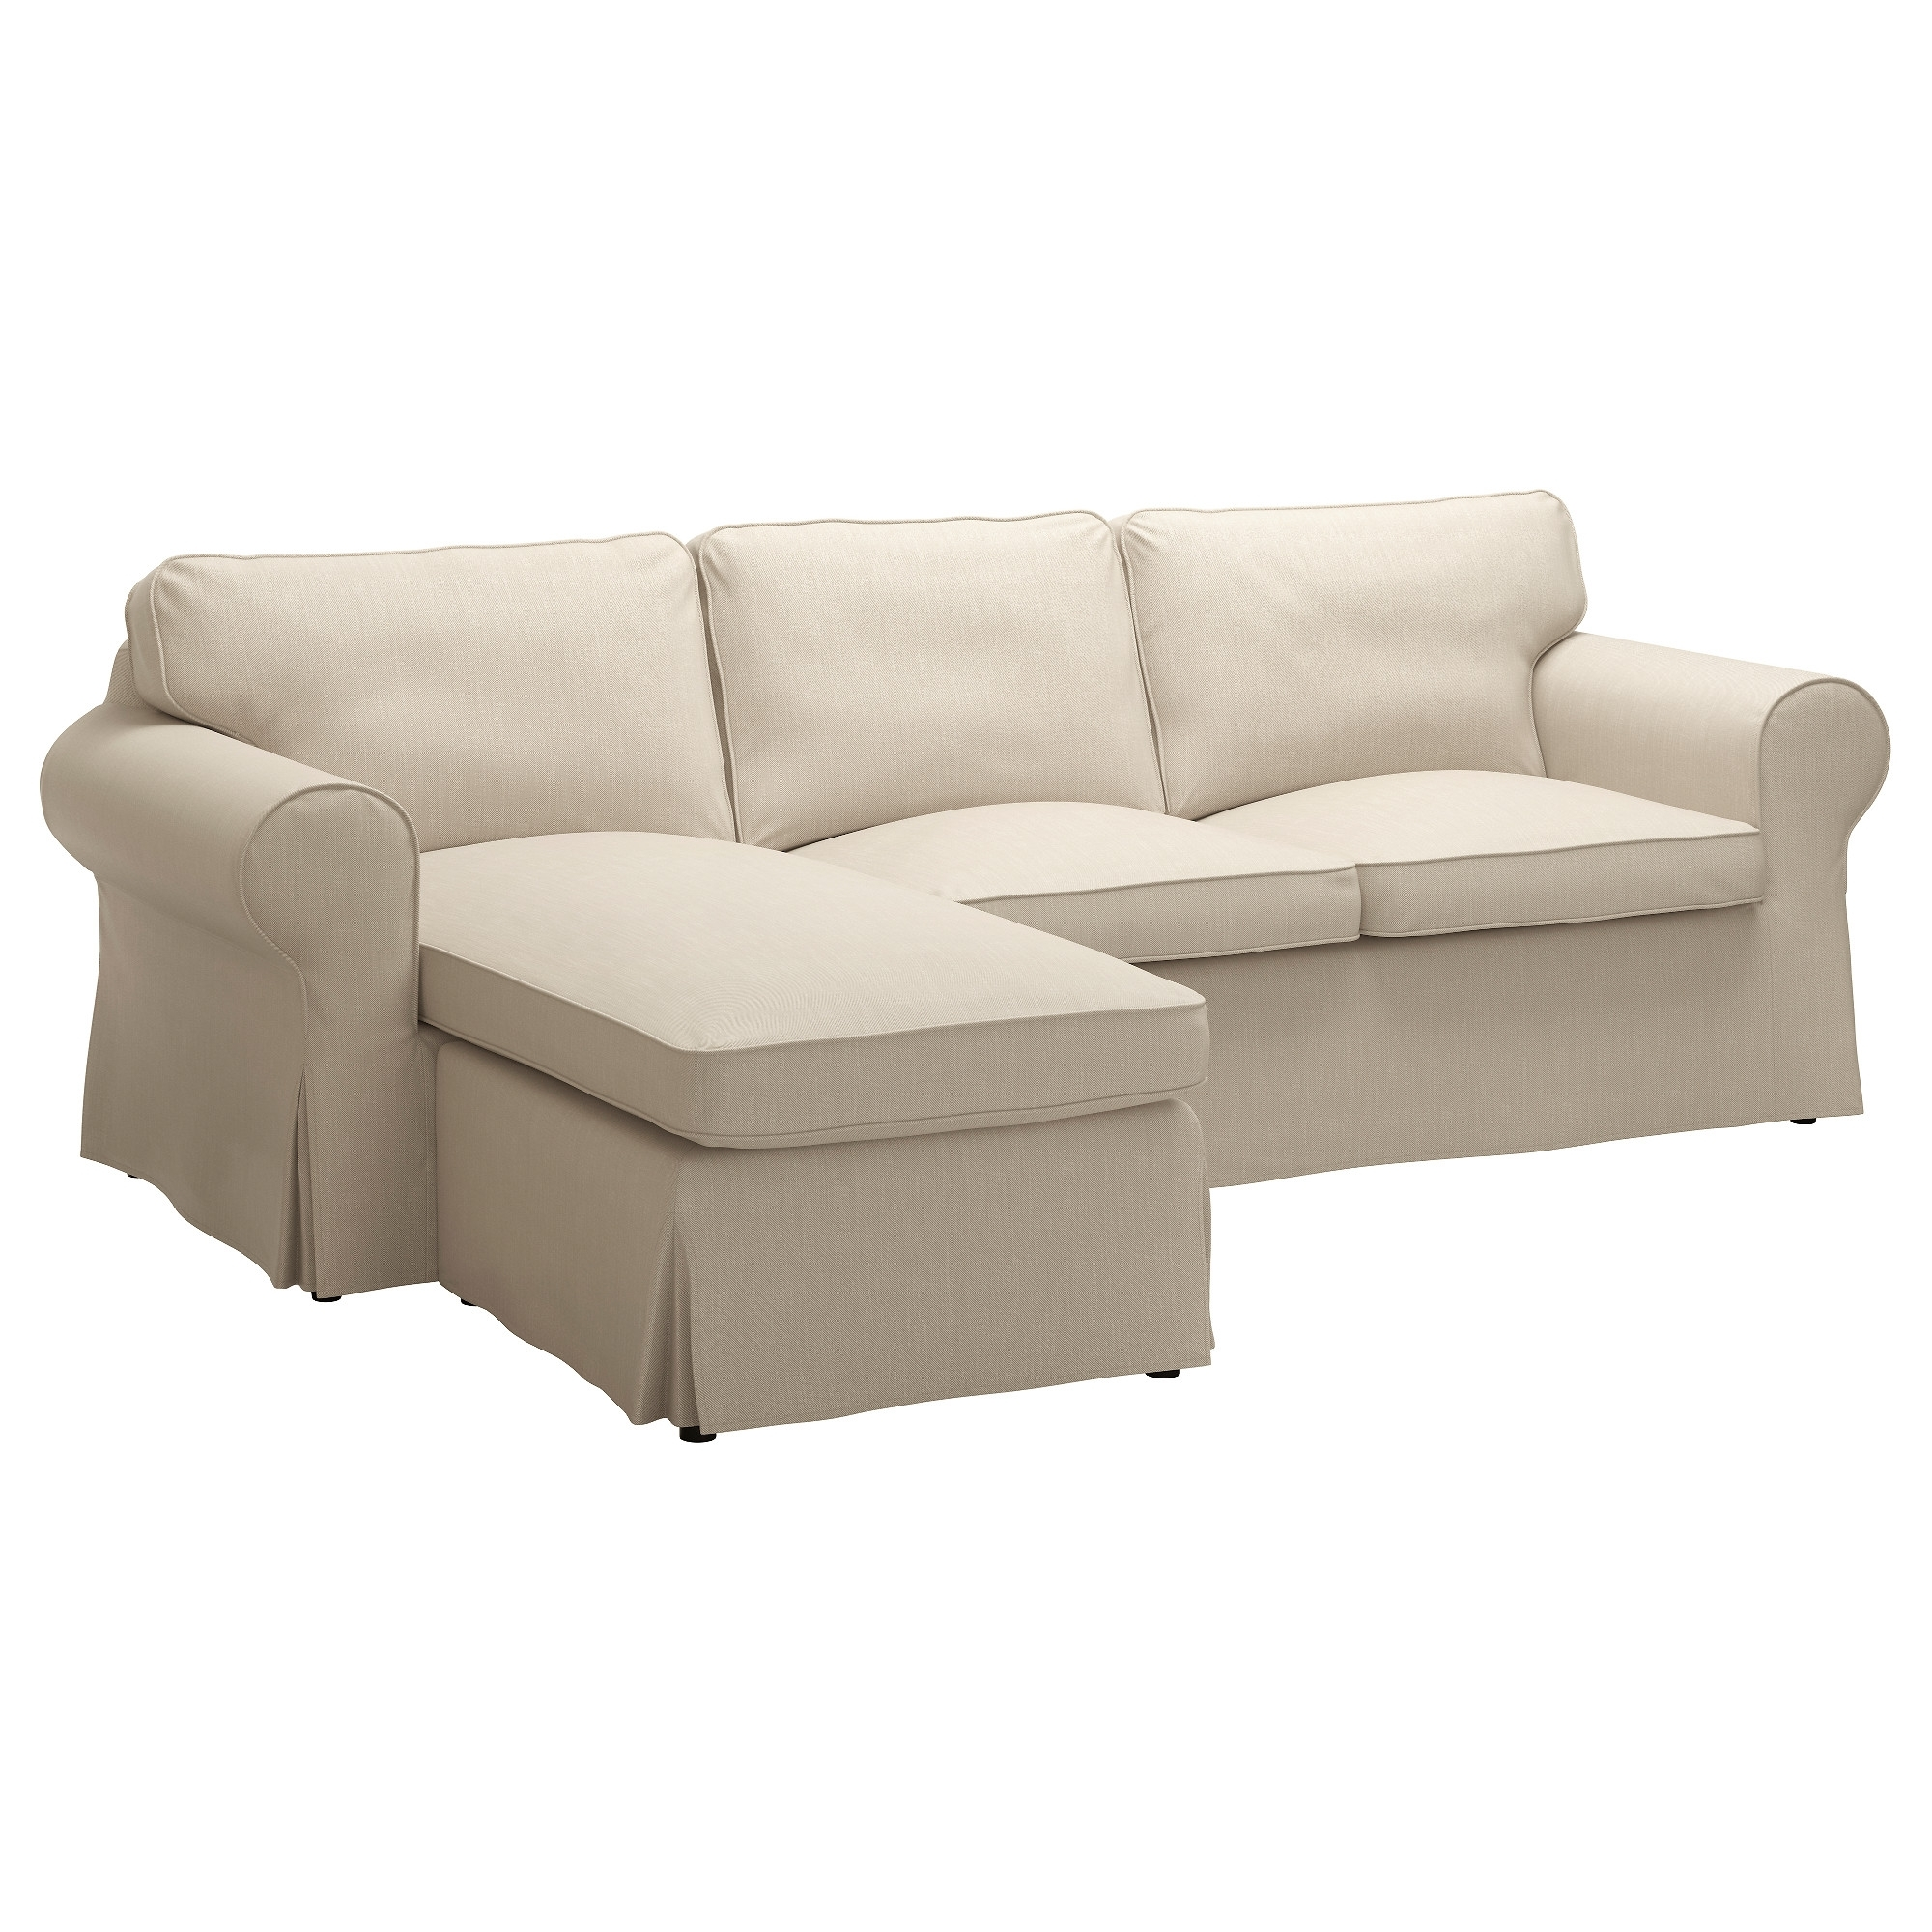 with set in sofas and couches lounge sofa chaise bed fancy